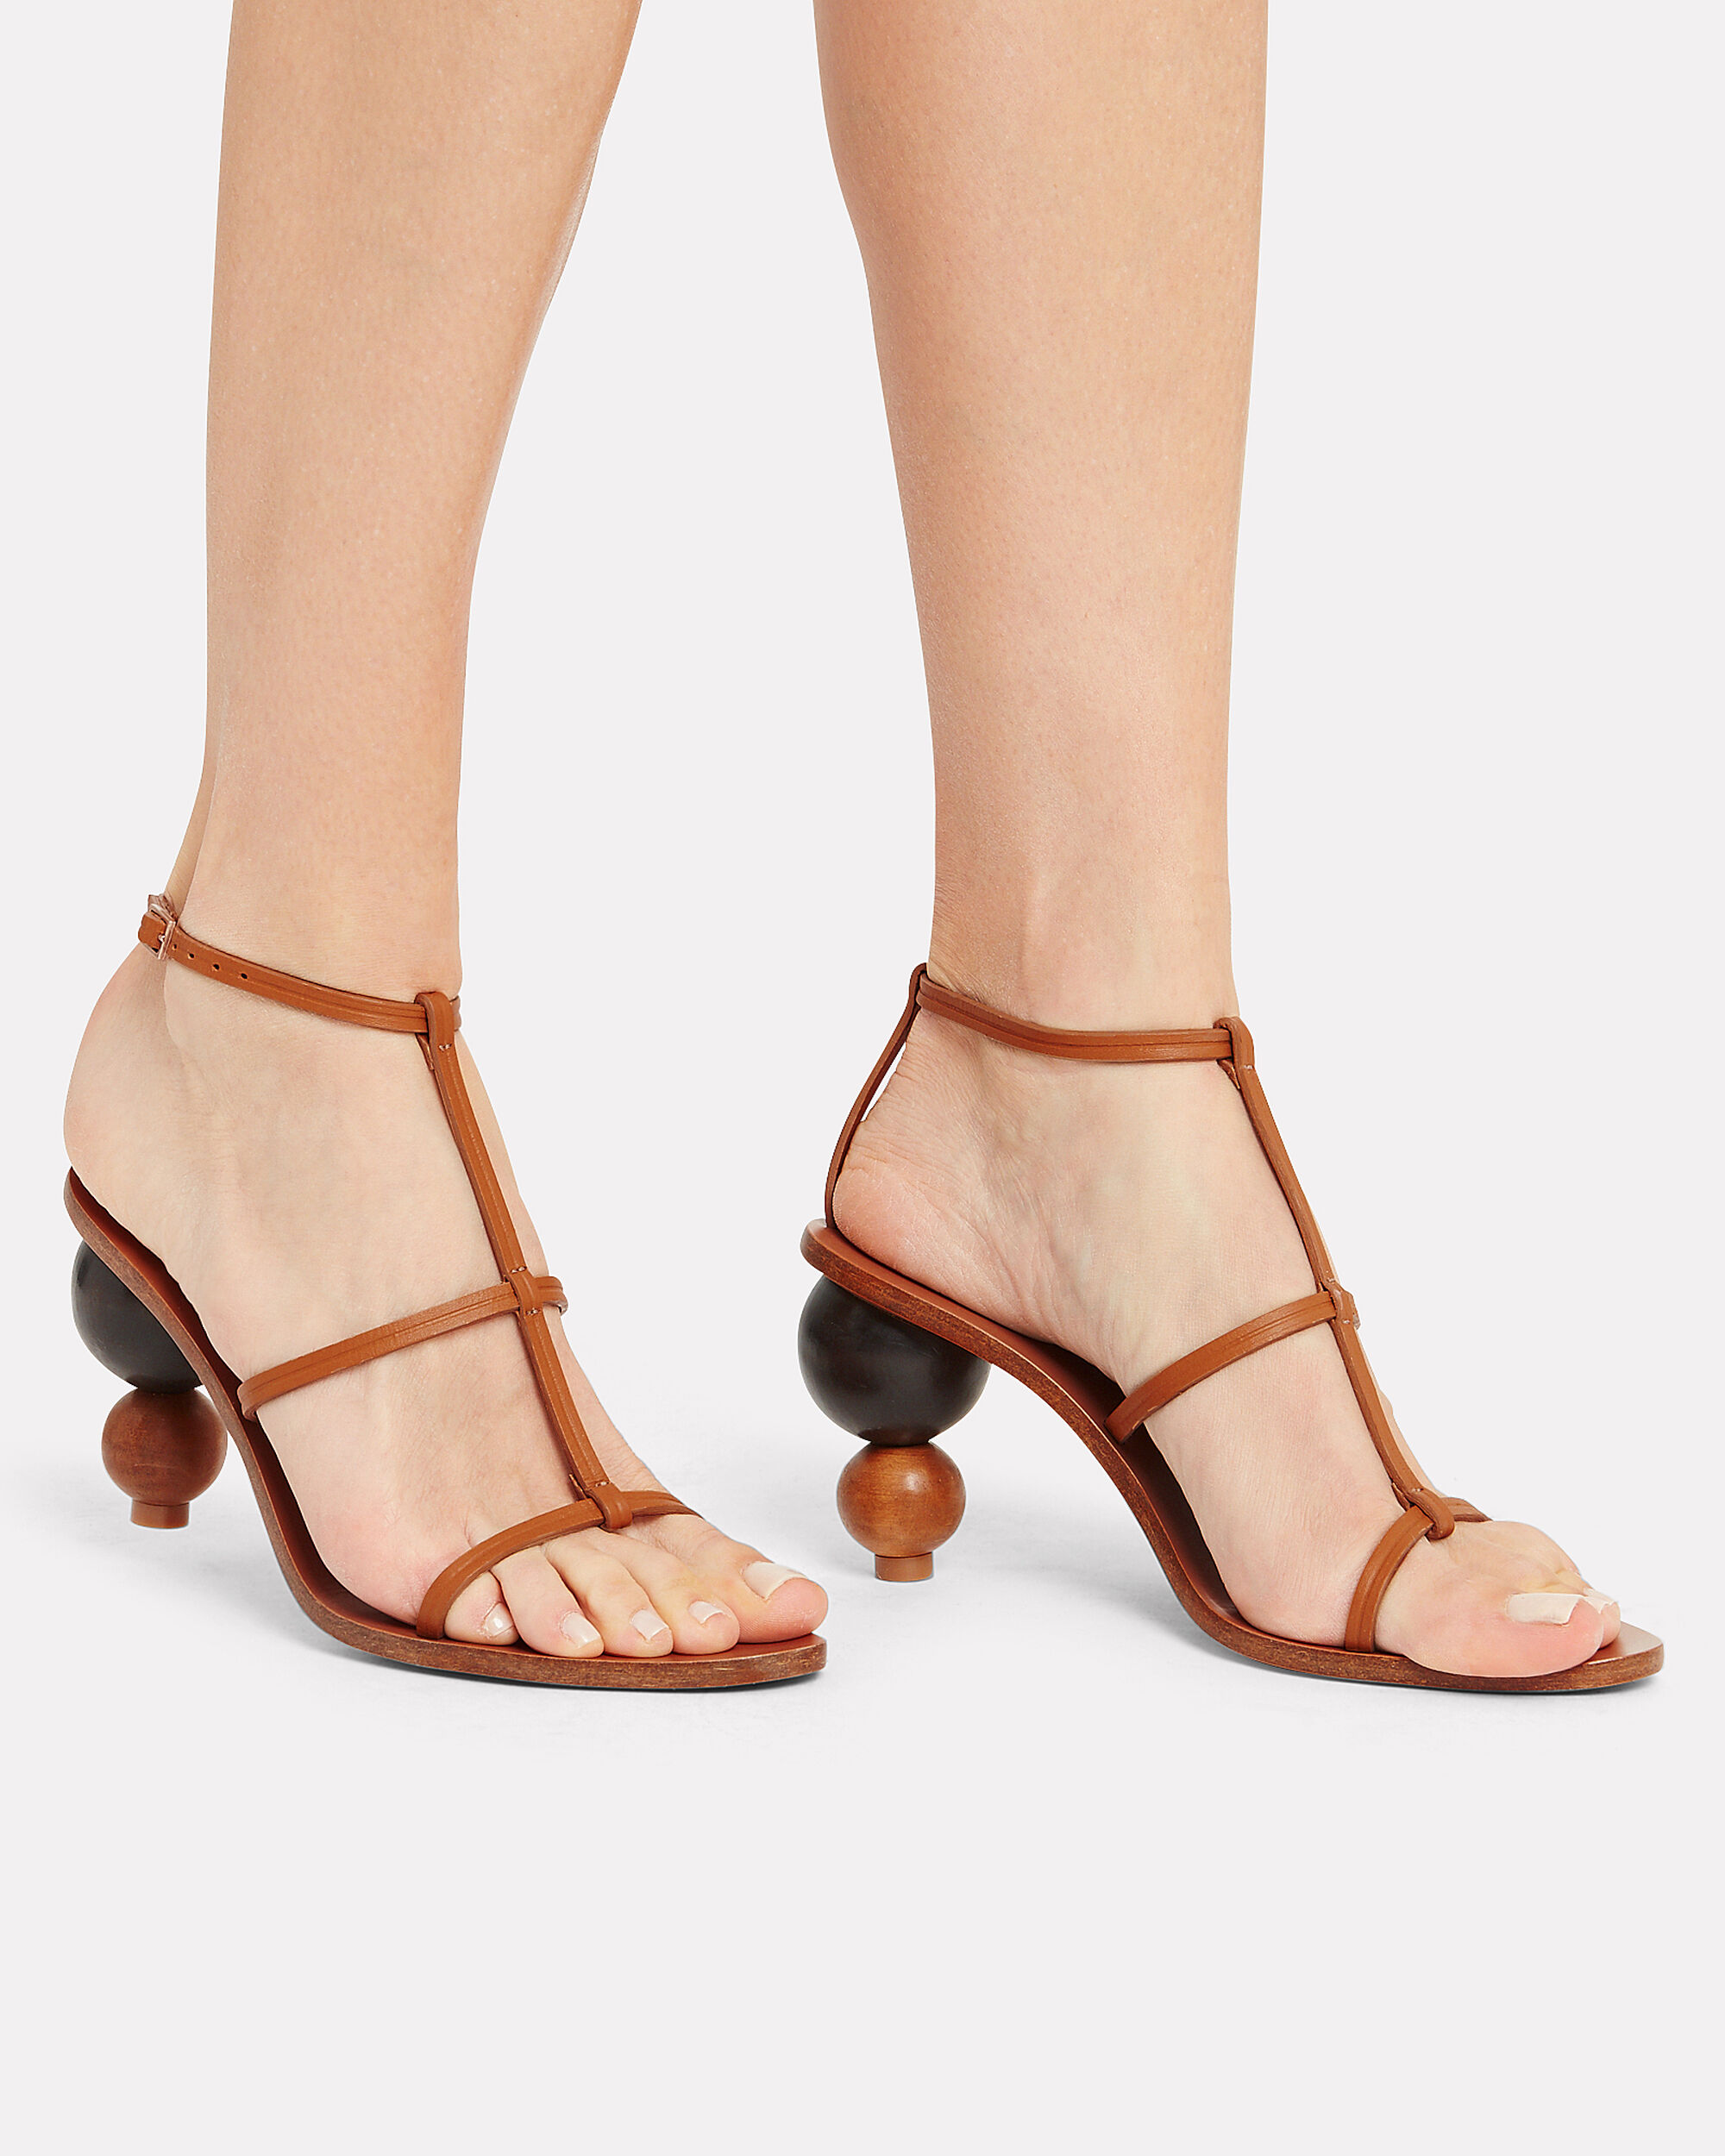 Eden Sandals, BROWN, hi-res